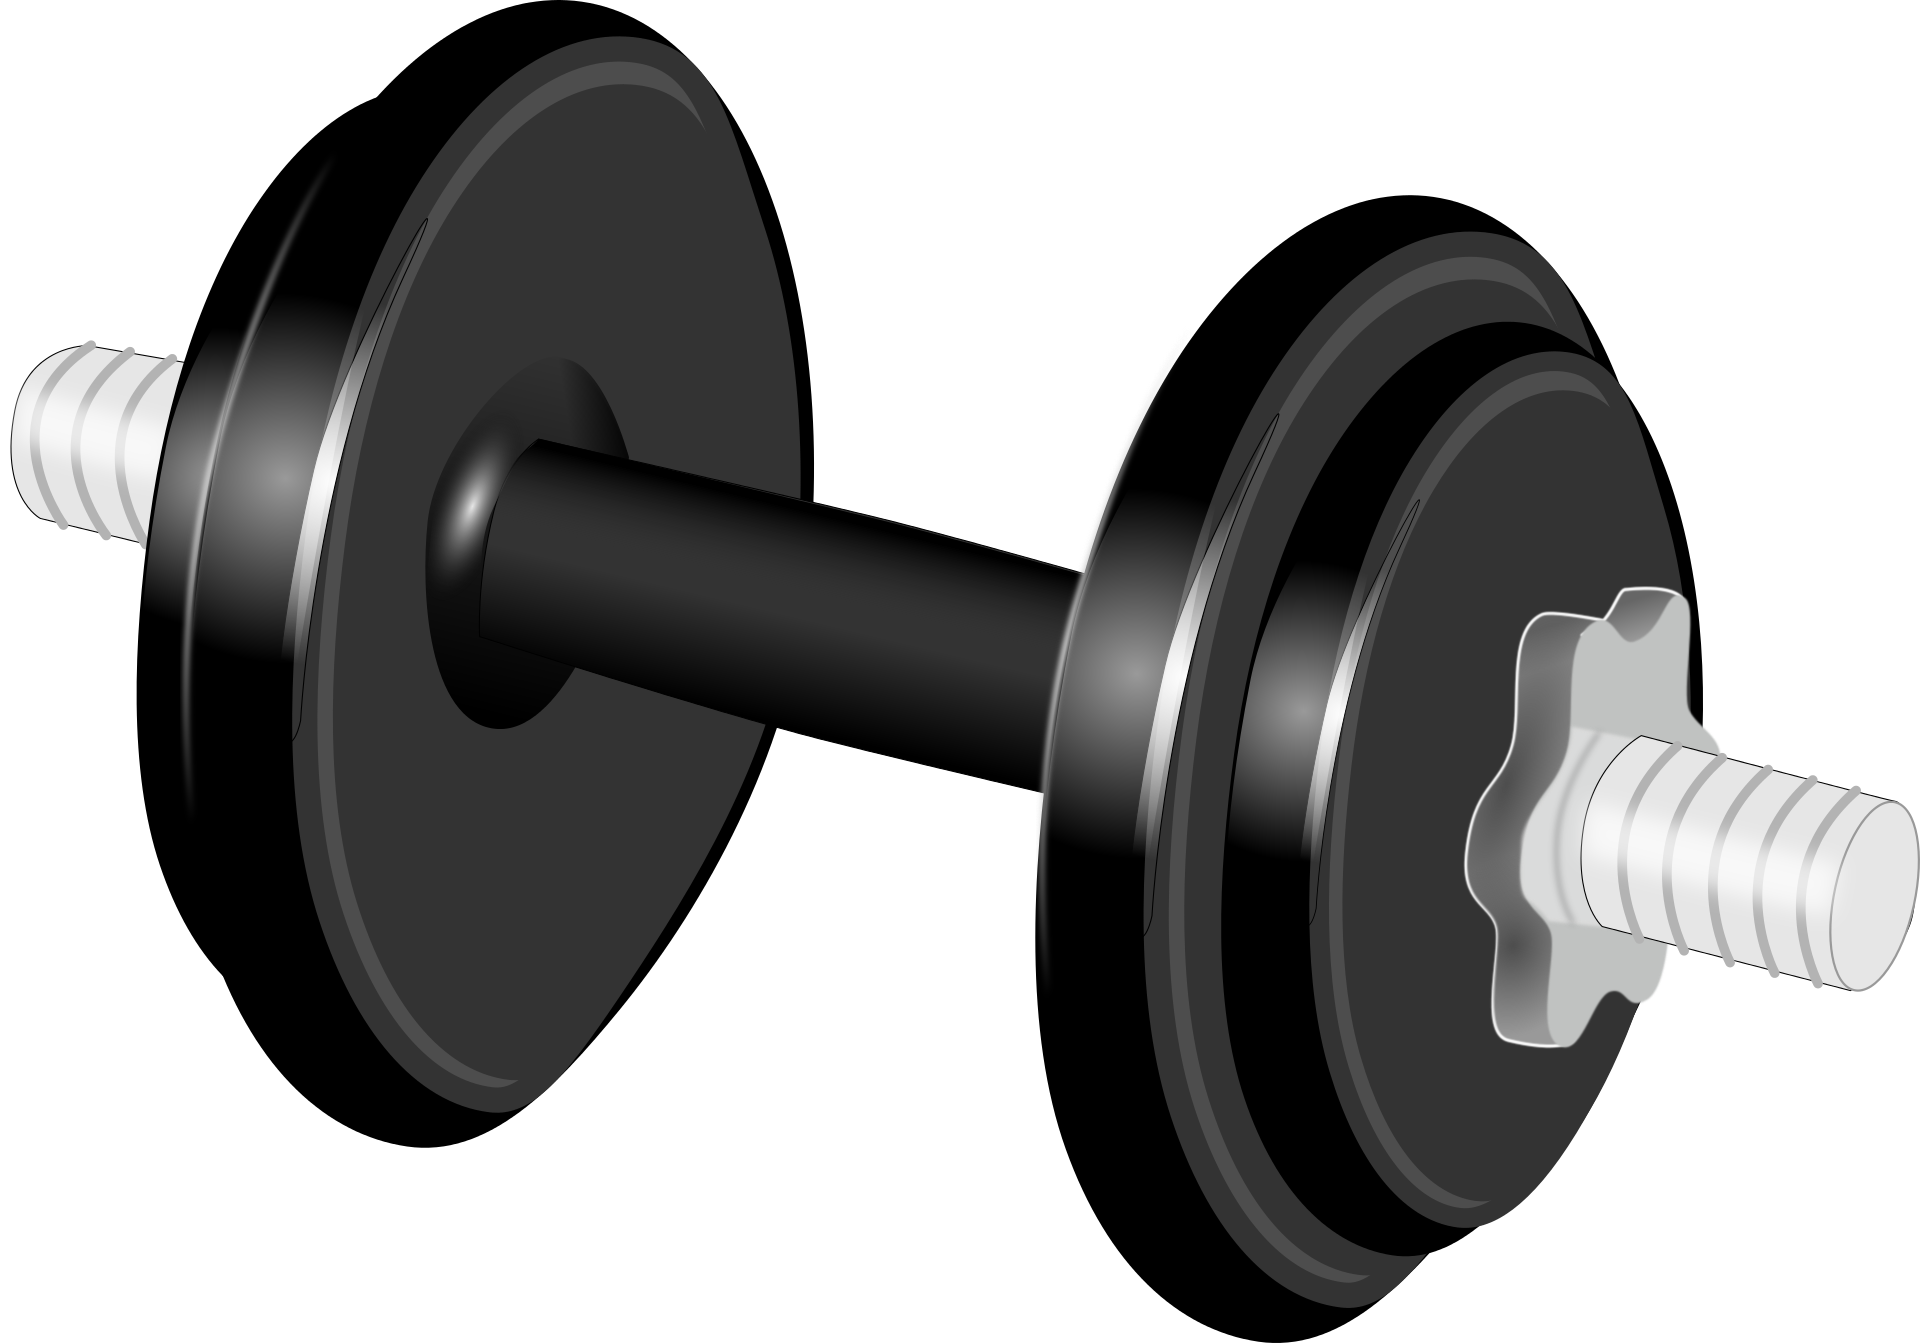 Exercise clipart sport training. Dumbbell weight clip art